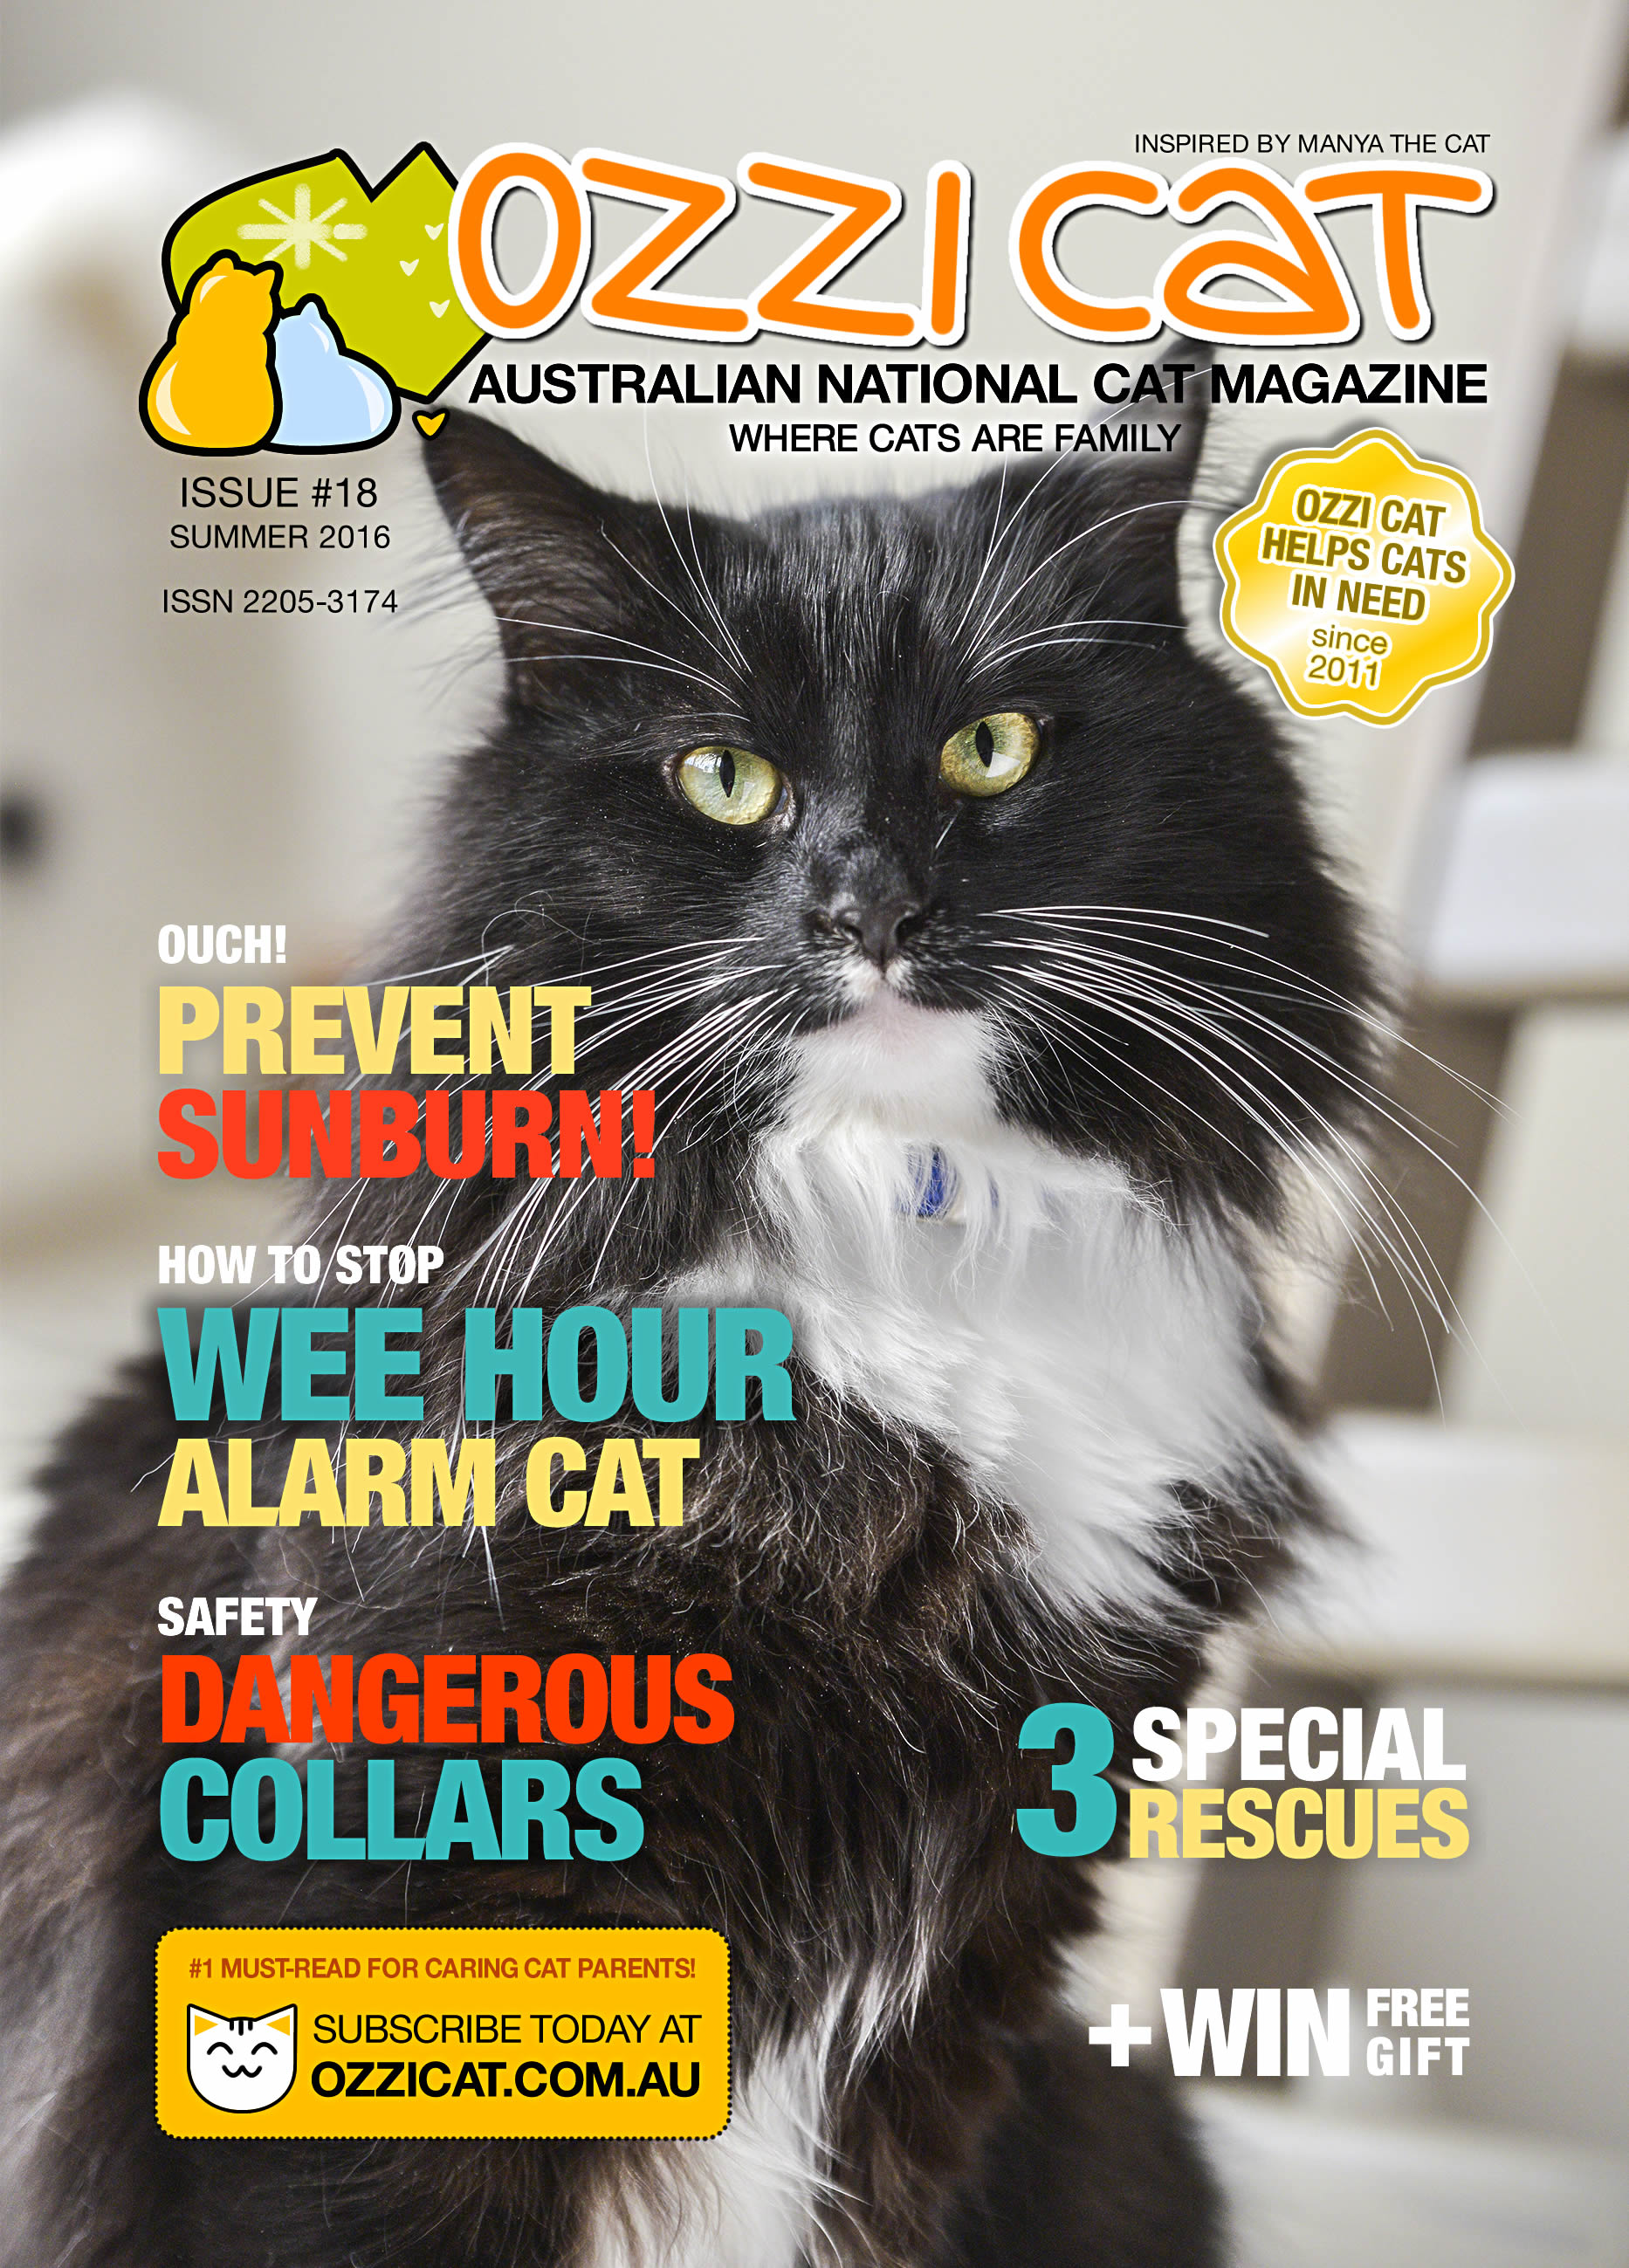 Ozzi Cat Magazine - Issue 18 - SUMMER 2016 | Australian National Cat Magazine